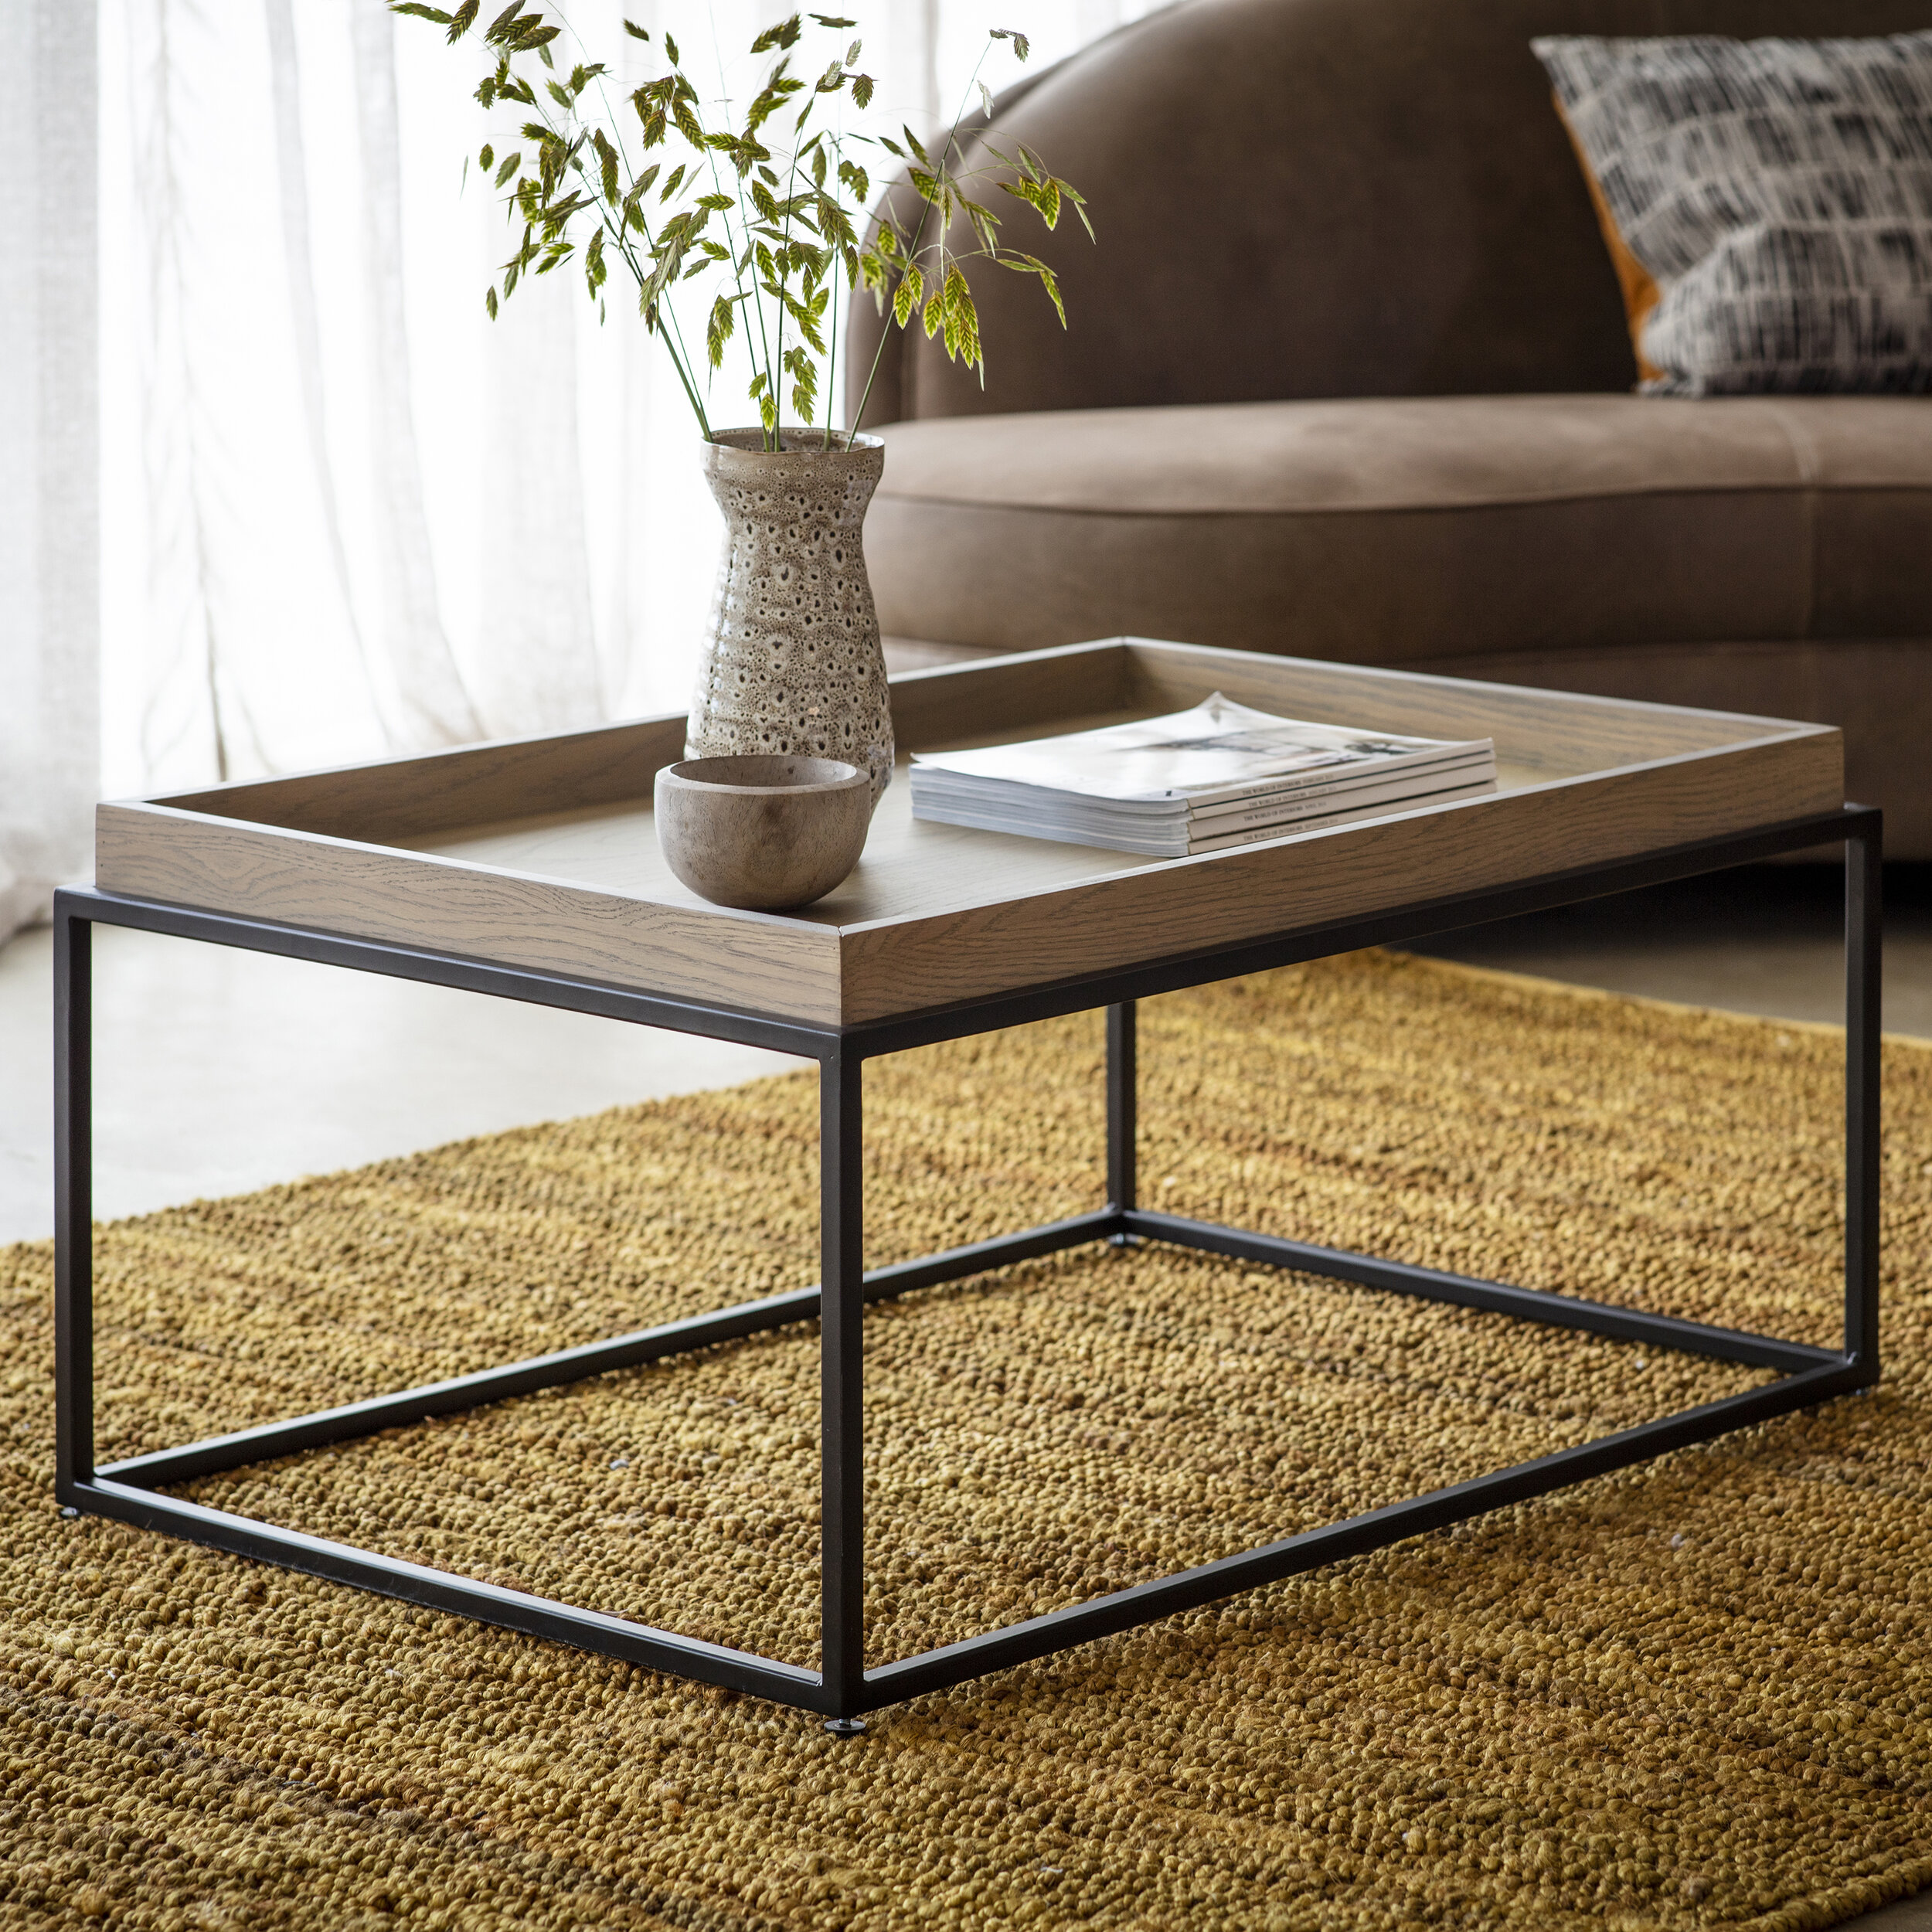 - Forden Tray Coffee Table Grey — Blue Antler Interiors